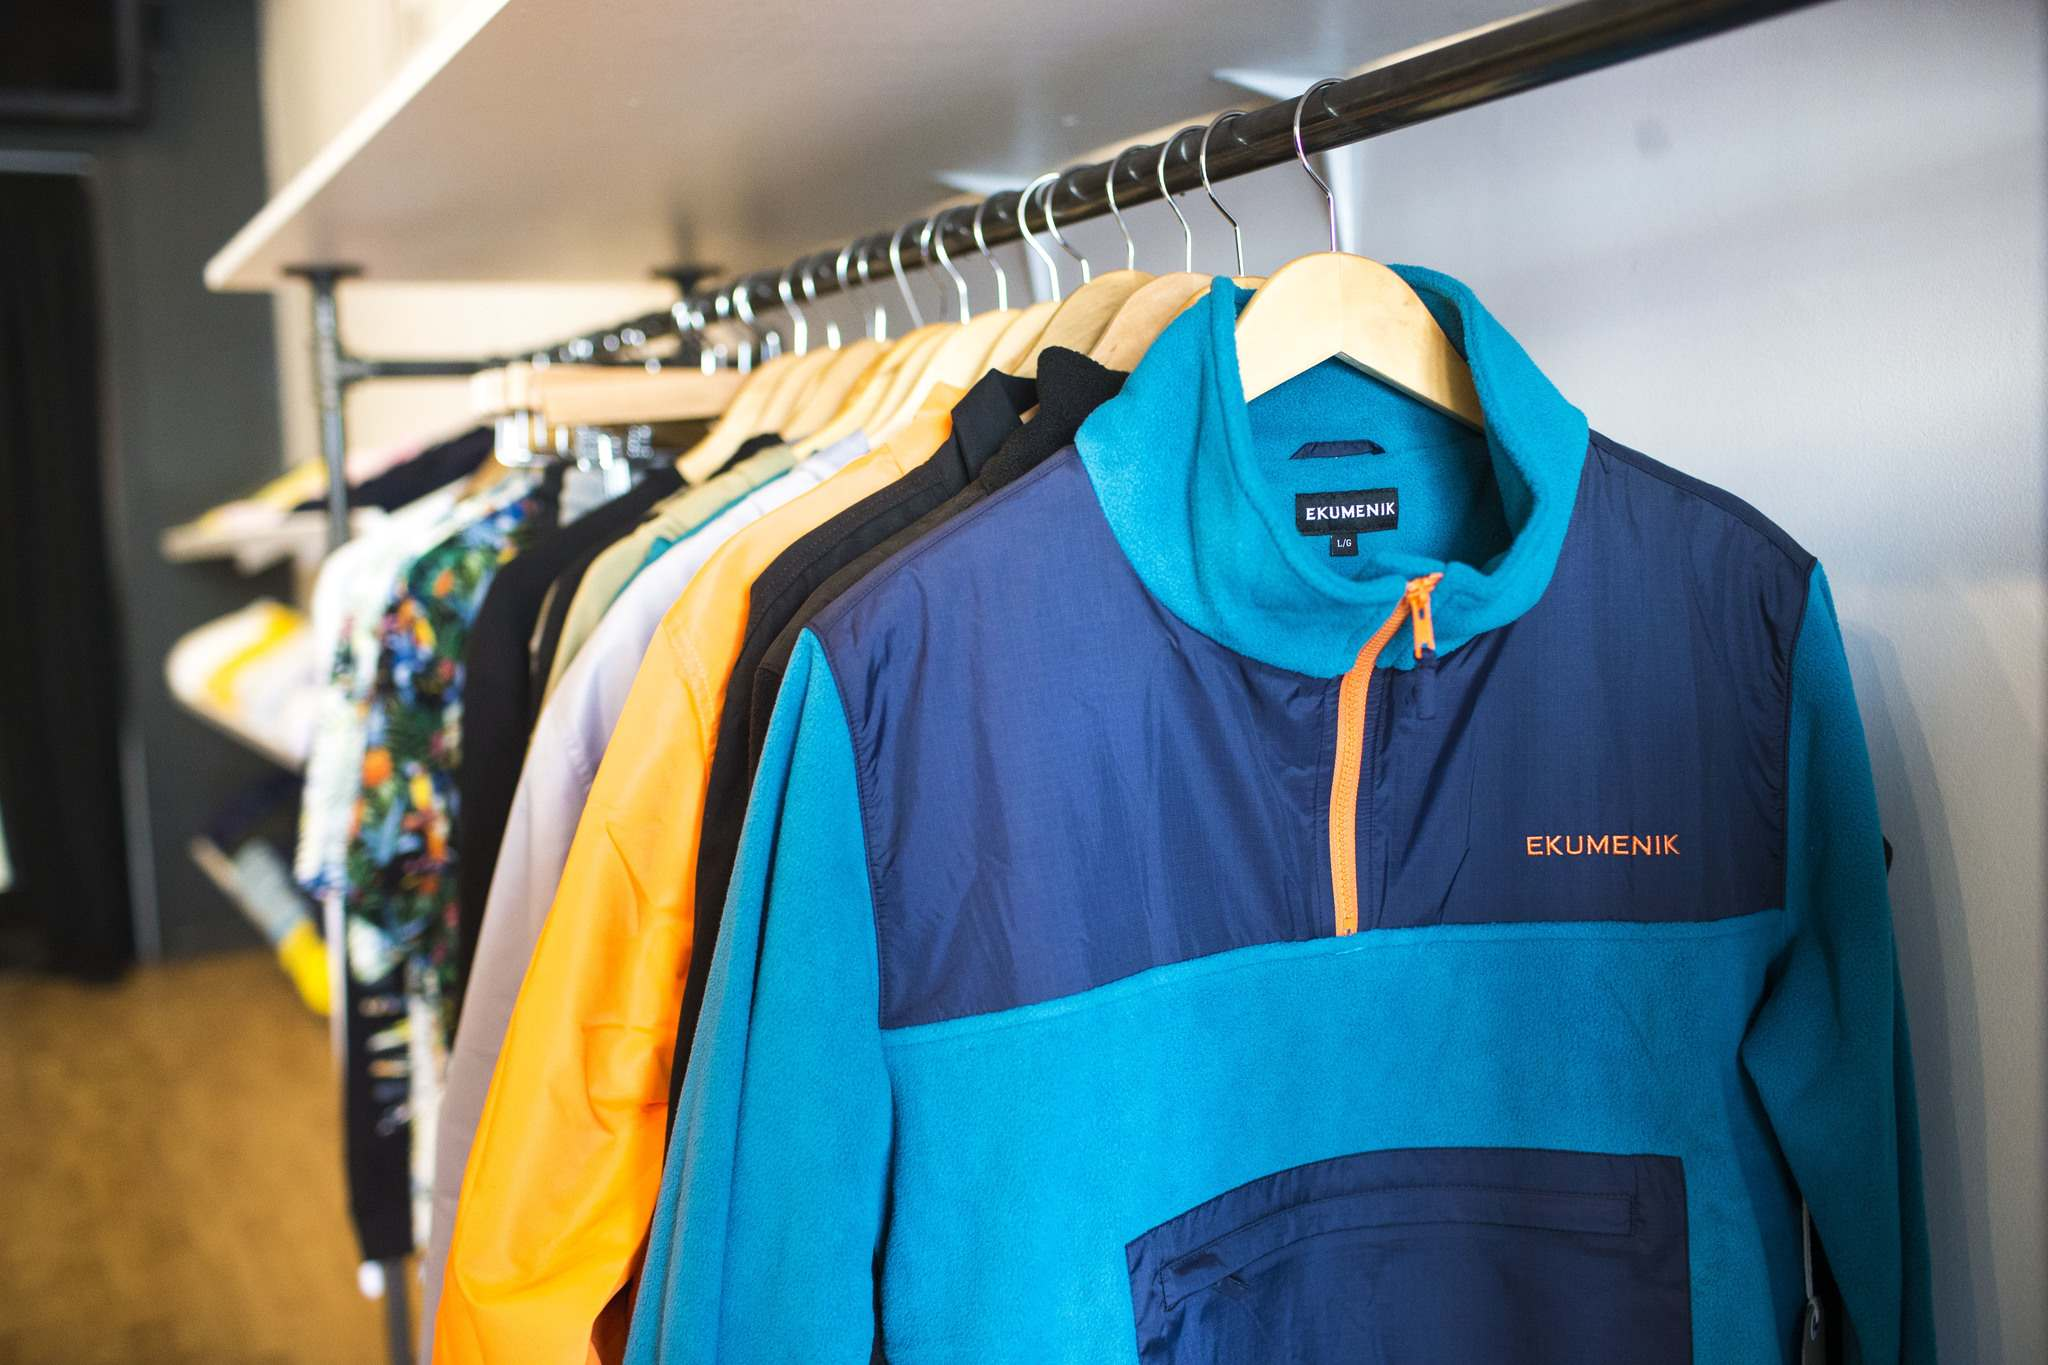 MIKAELA MACKENZIE / WINNIPEG FREE PRESS</p><p>Ekumenik clothing for skateboarders includes t-shirts, hoodies, jackets, raincoats, parkas, collared shirts, Hawaiian shirts, polar fleece, winter vests, pants, caps, shorts, bathing suits, and cardigan sweaters.</p>